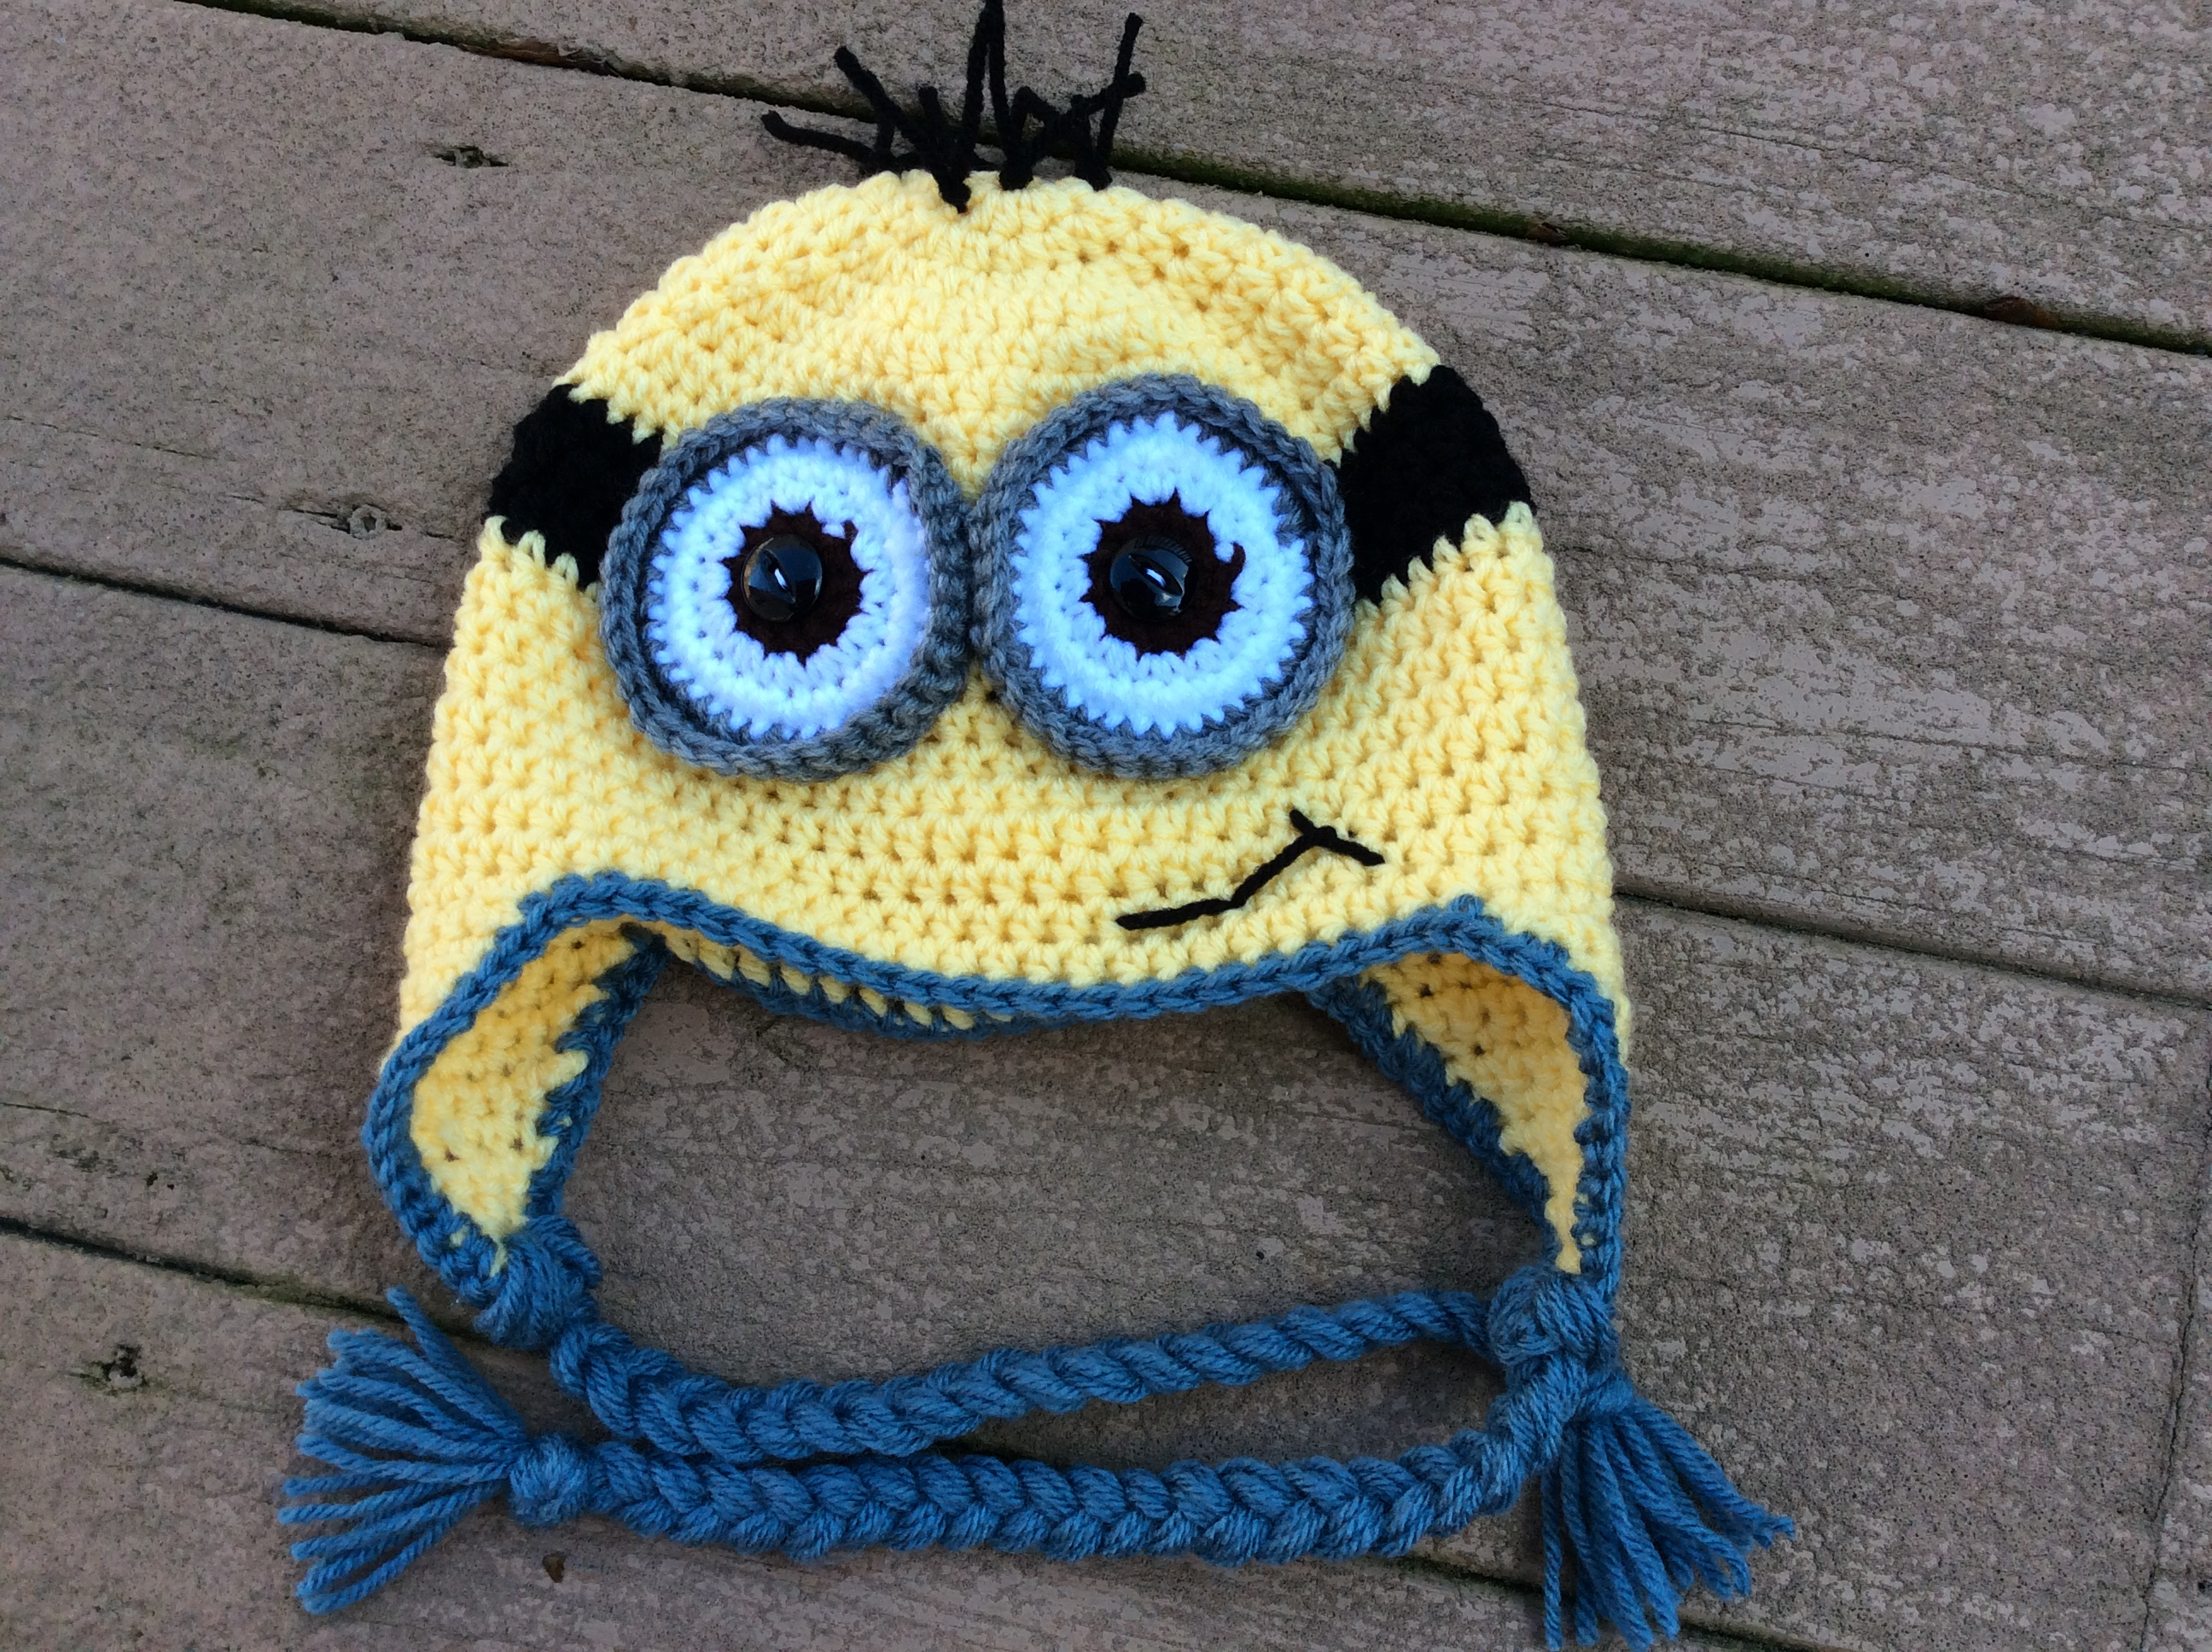 Knitting Patterns For Minion Hats Crochet Minion Hat From Yarnover The Moon